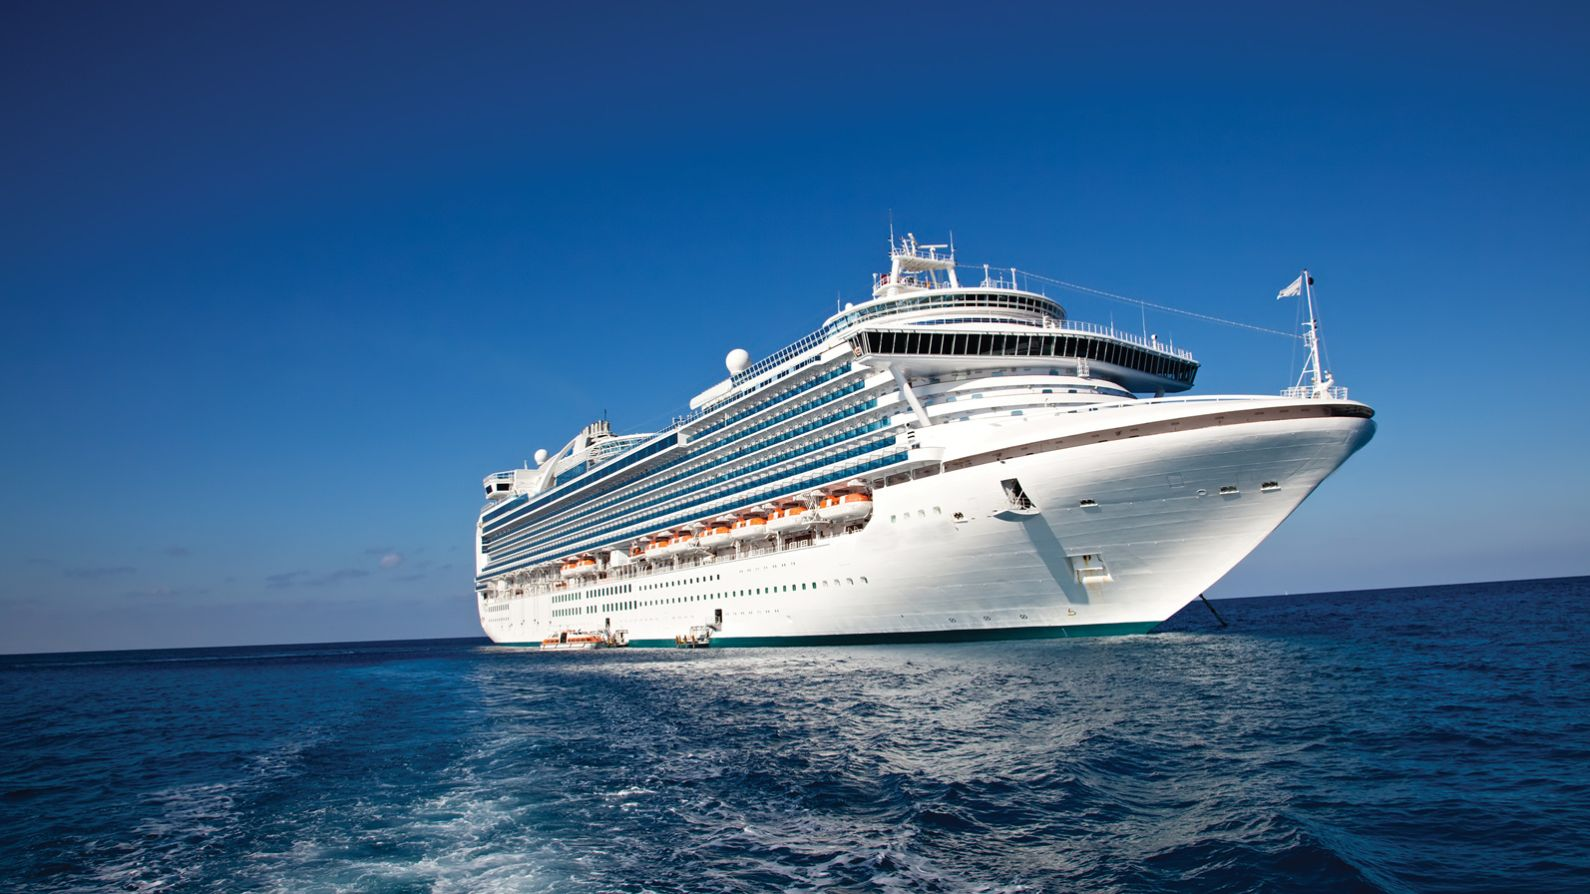 Cruise ships equipped with Nexans cables and solutions